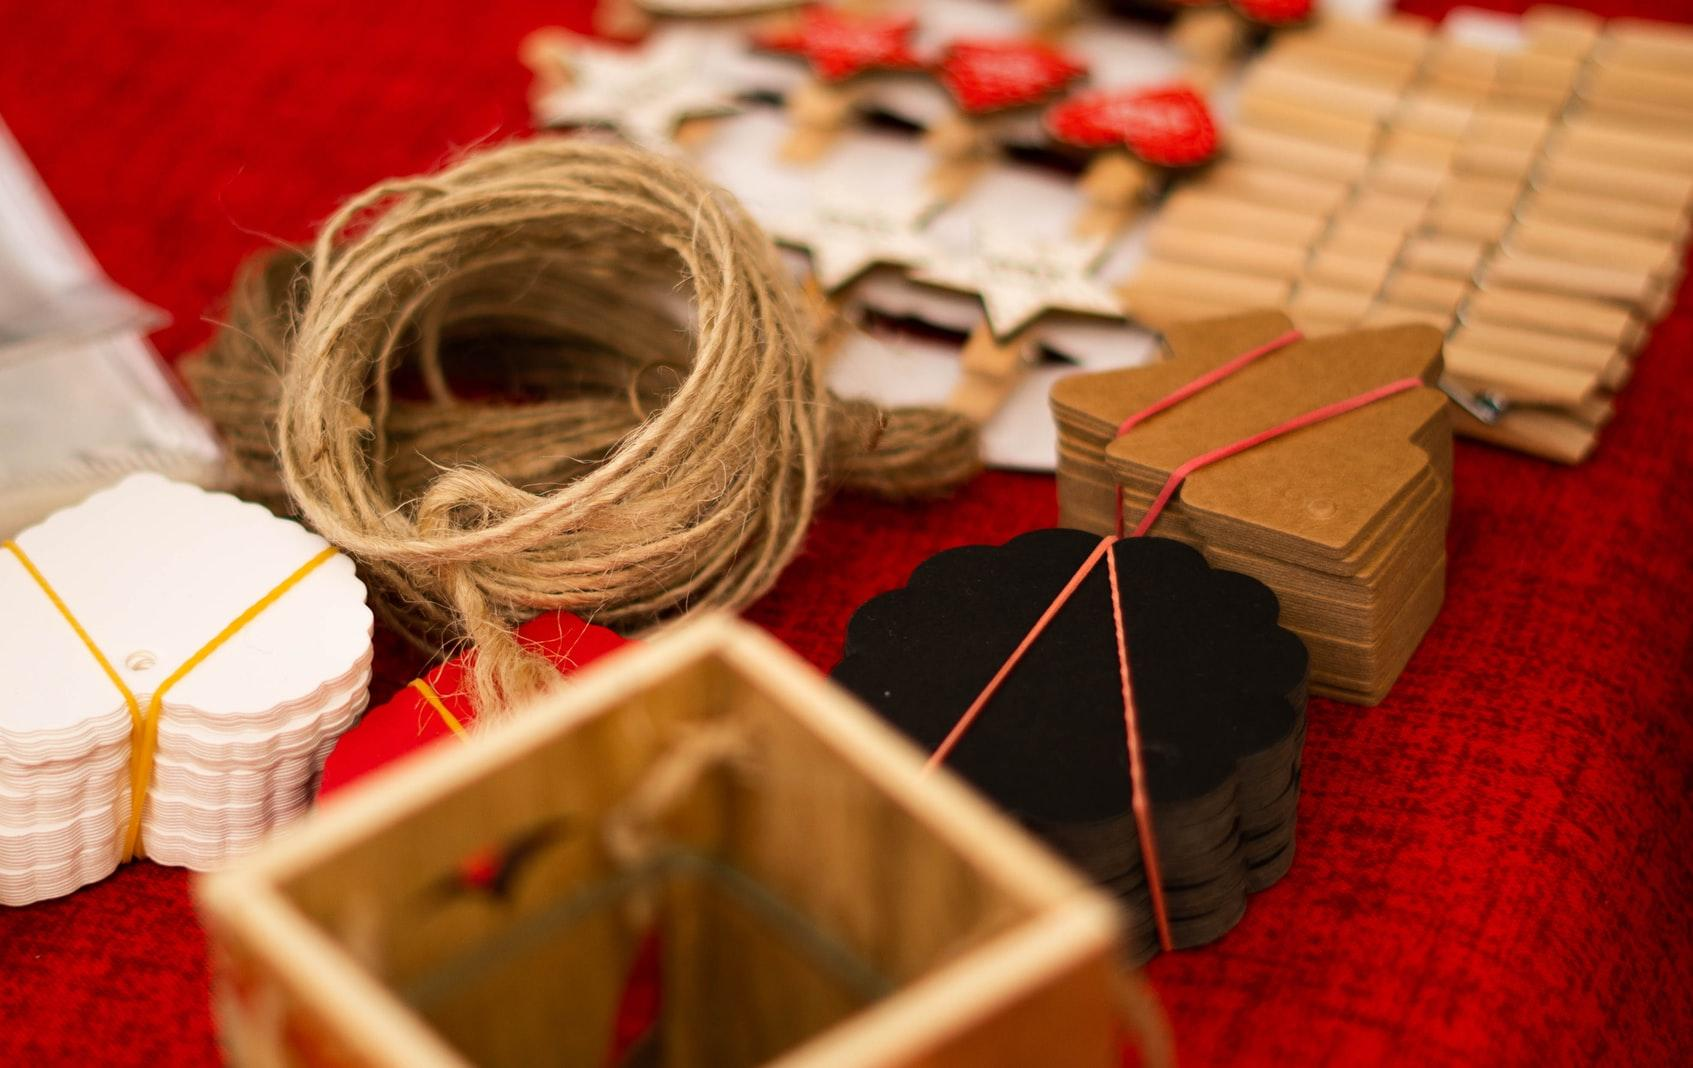 Different kinds of art and craft materials placed on a red fabric.